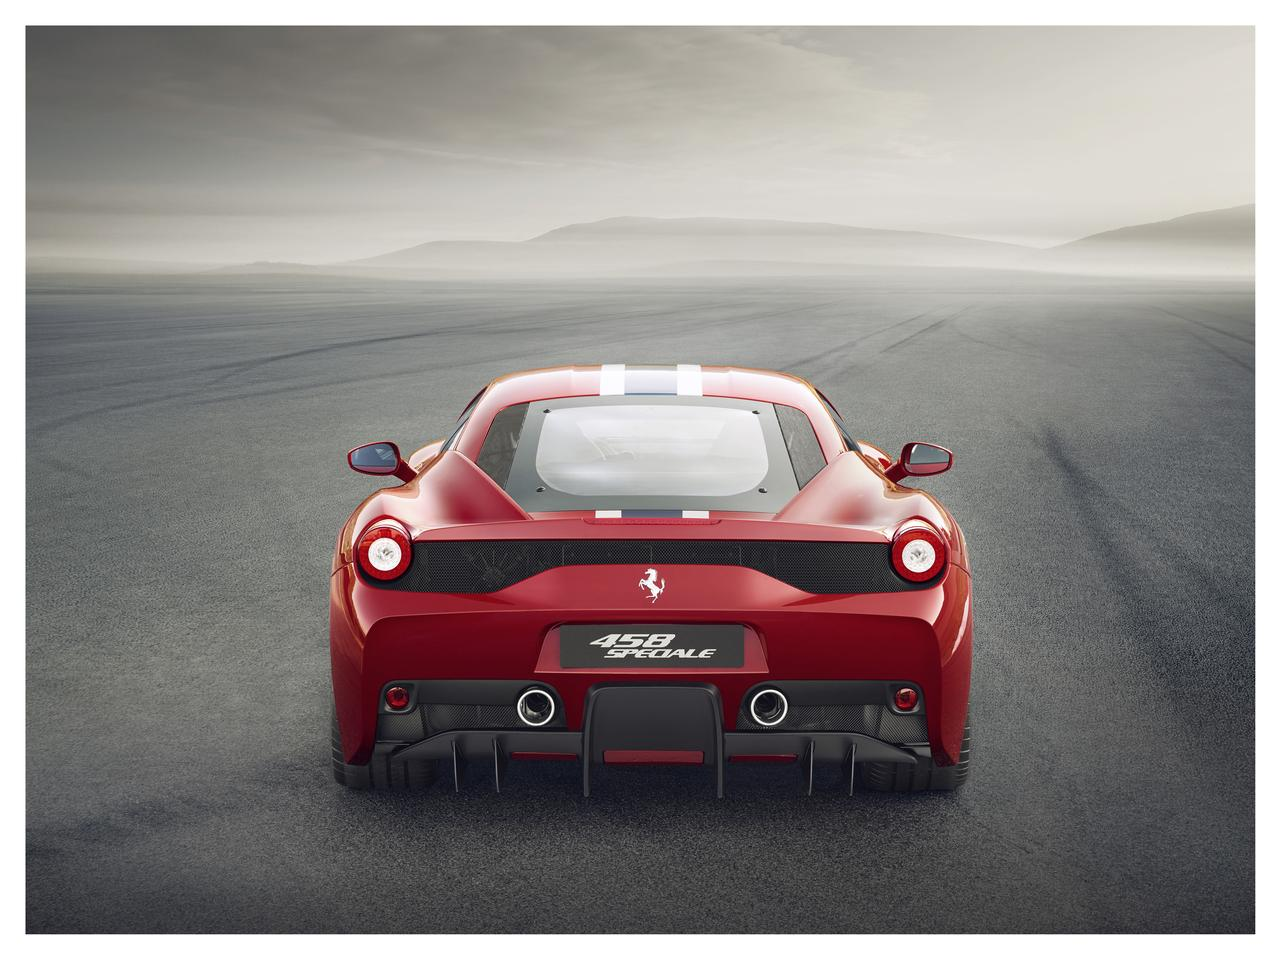 The 458 Speciale gets new moveable aerodynamics in front and back